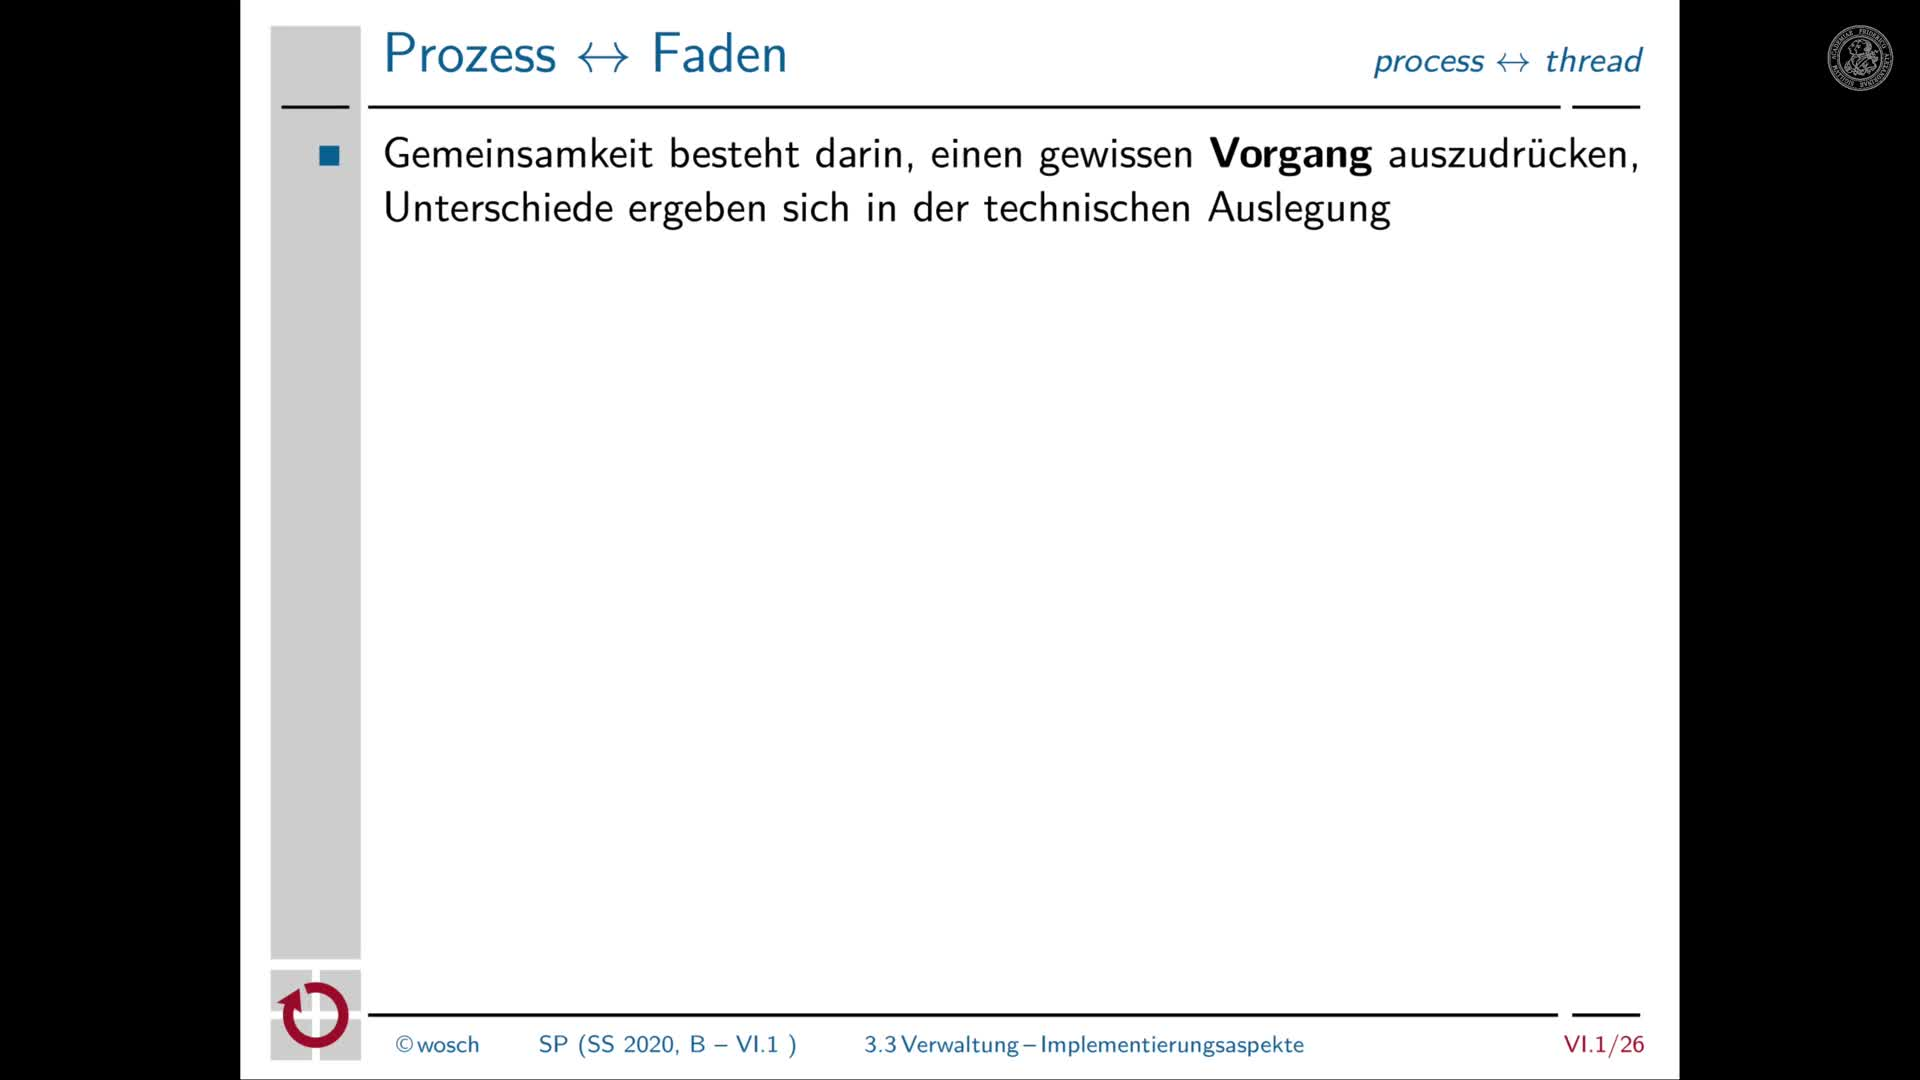 6.1.7 Prozesse: Implementierungsaspekte preview image